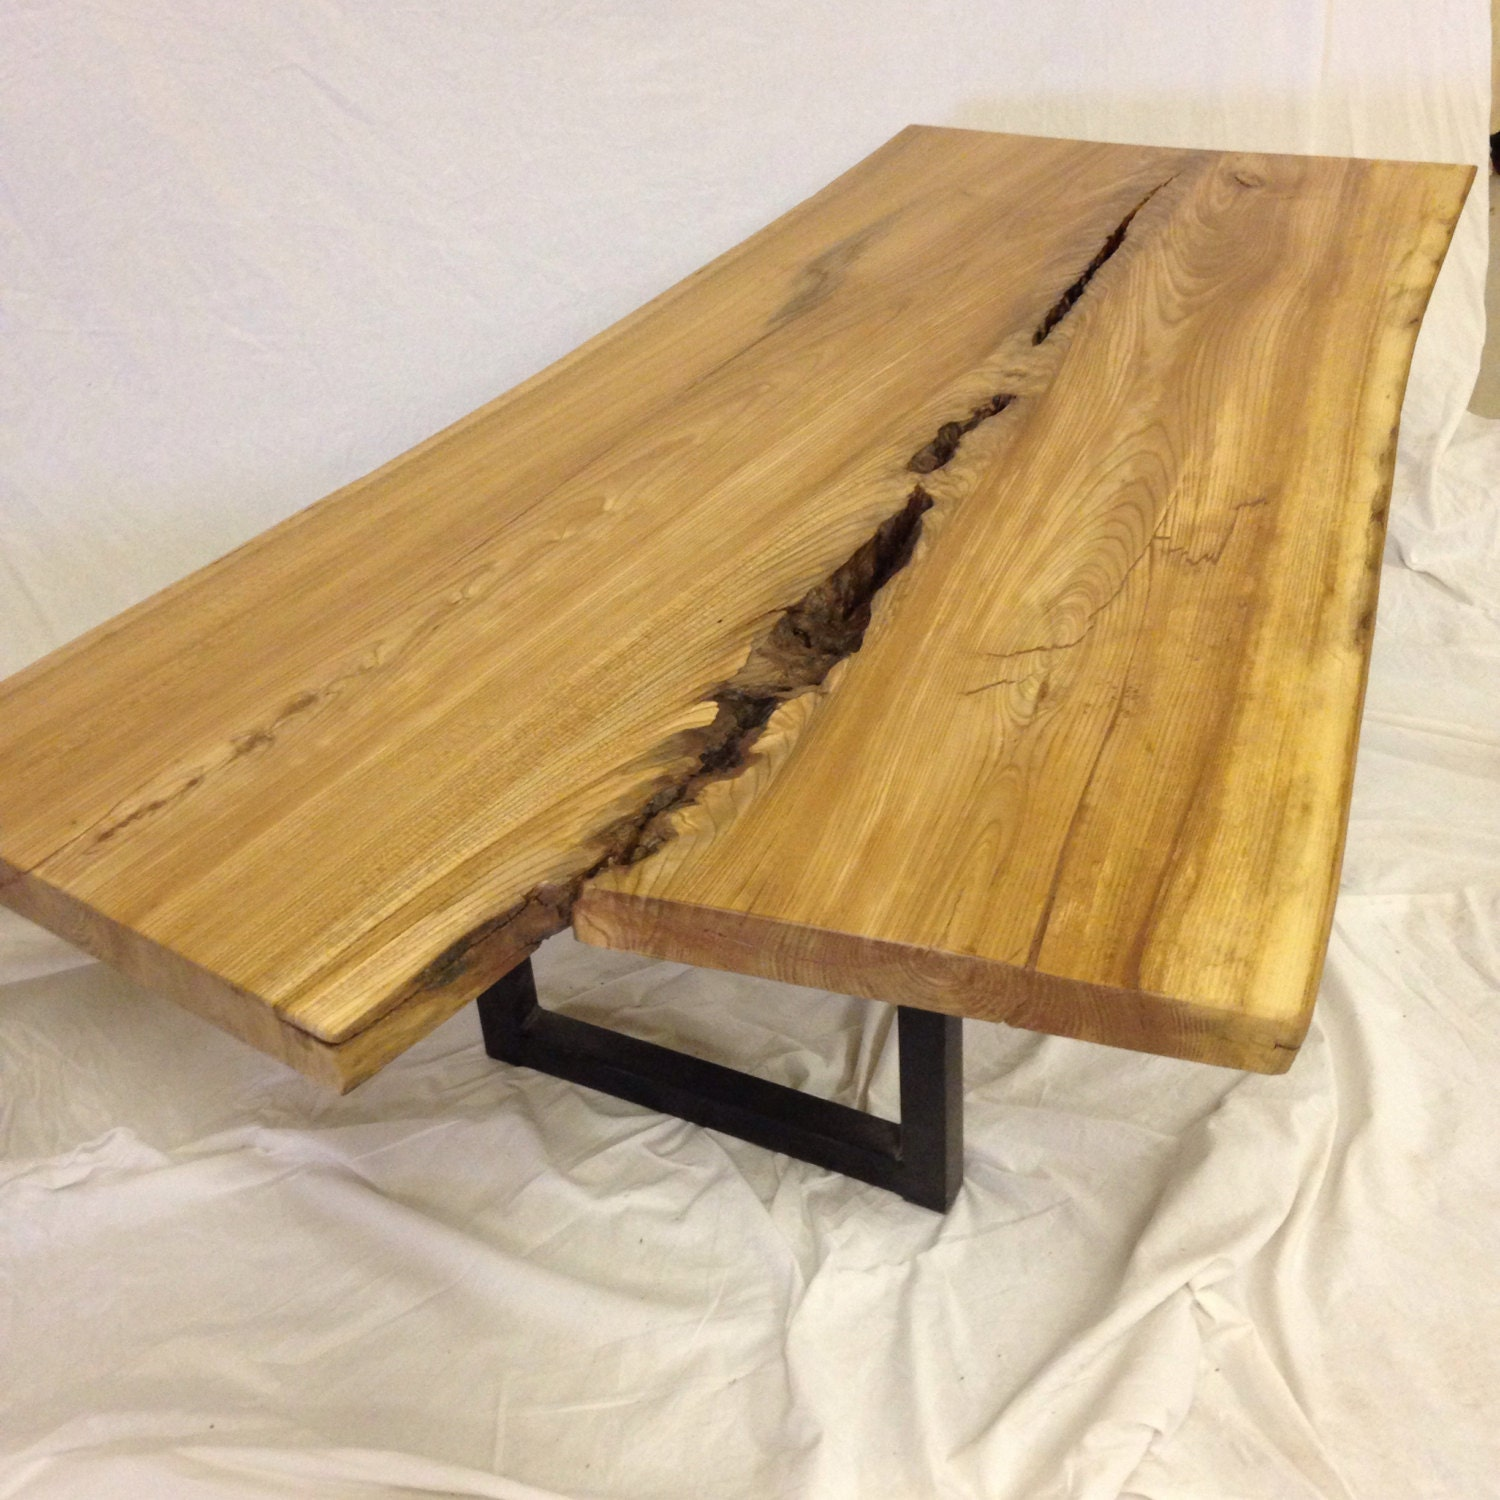 Live edge wood coffee table live edge coffee table live edge table wood slab by urbanwoodllc Live wood coffee table